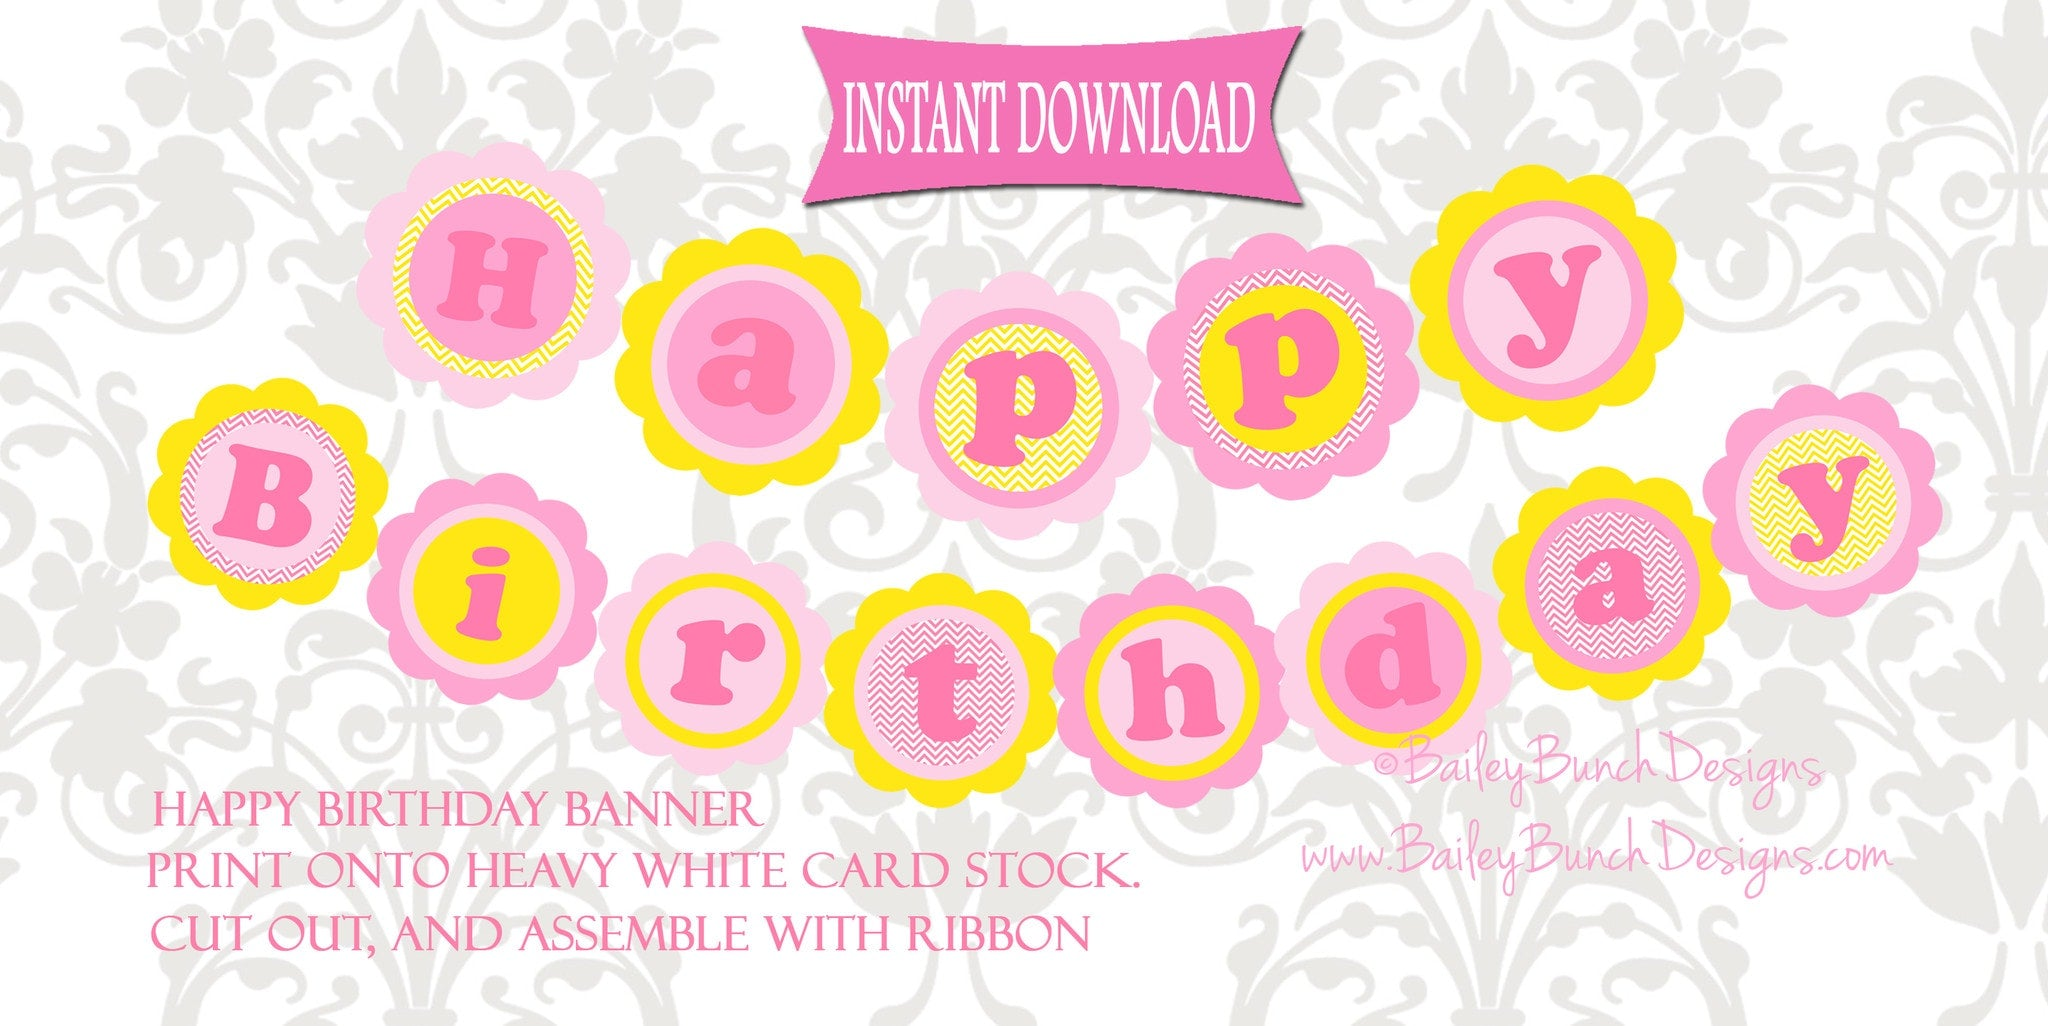 you are my sunshine xl happy birthday banner pink yellow